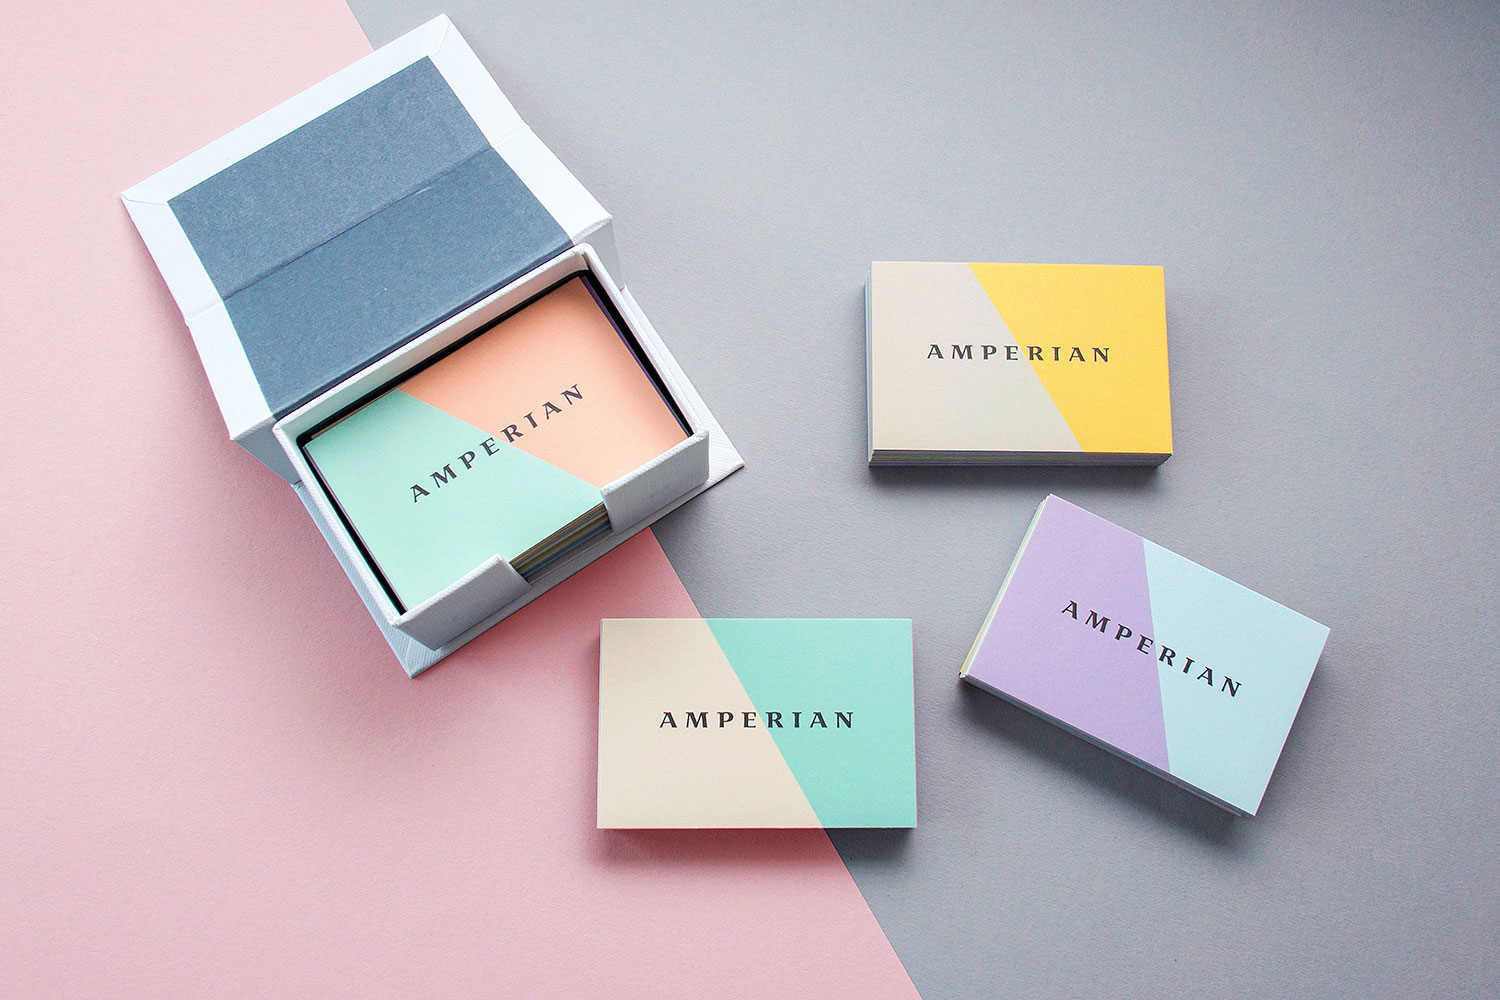 Amperian SG branding corporate identity design - Business cards design by Singapore based brand strategy and creative design consultancy, BÜRO UFHO.